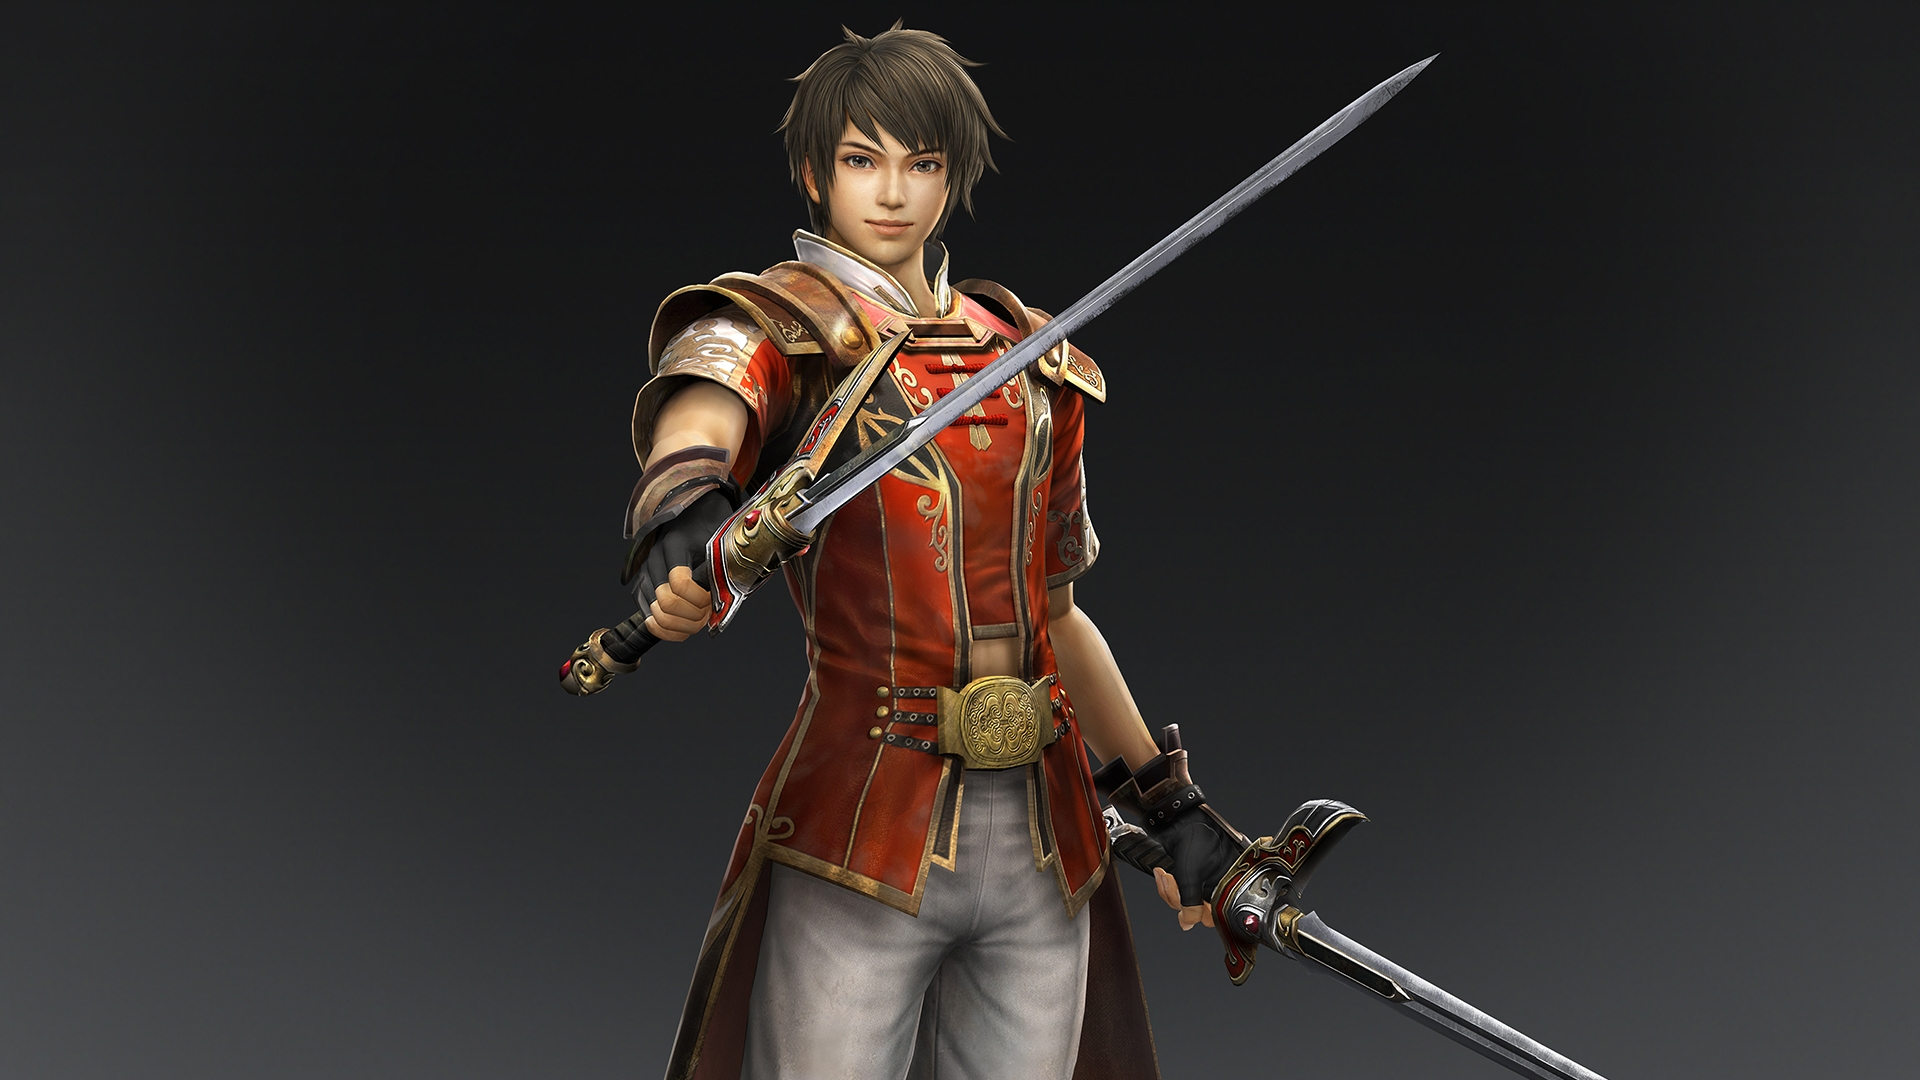 Dynasty Warriors 9 HD Wallpapers   Playstation, Xbox and ...